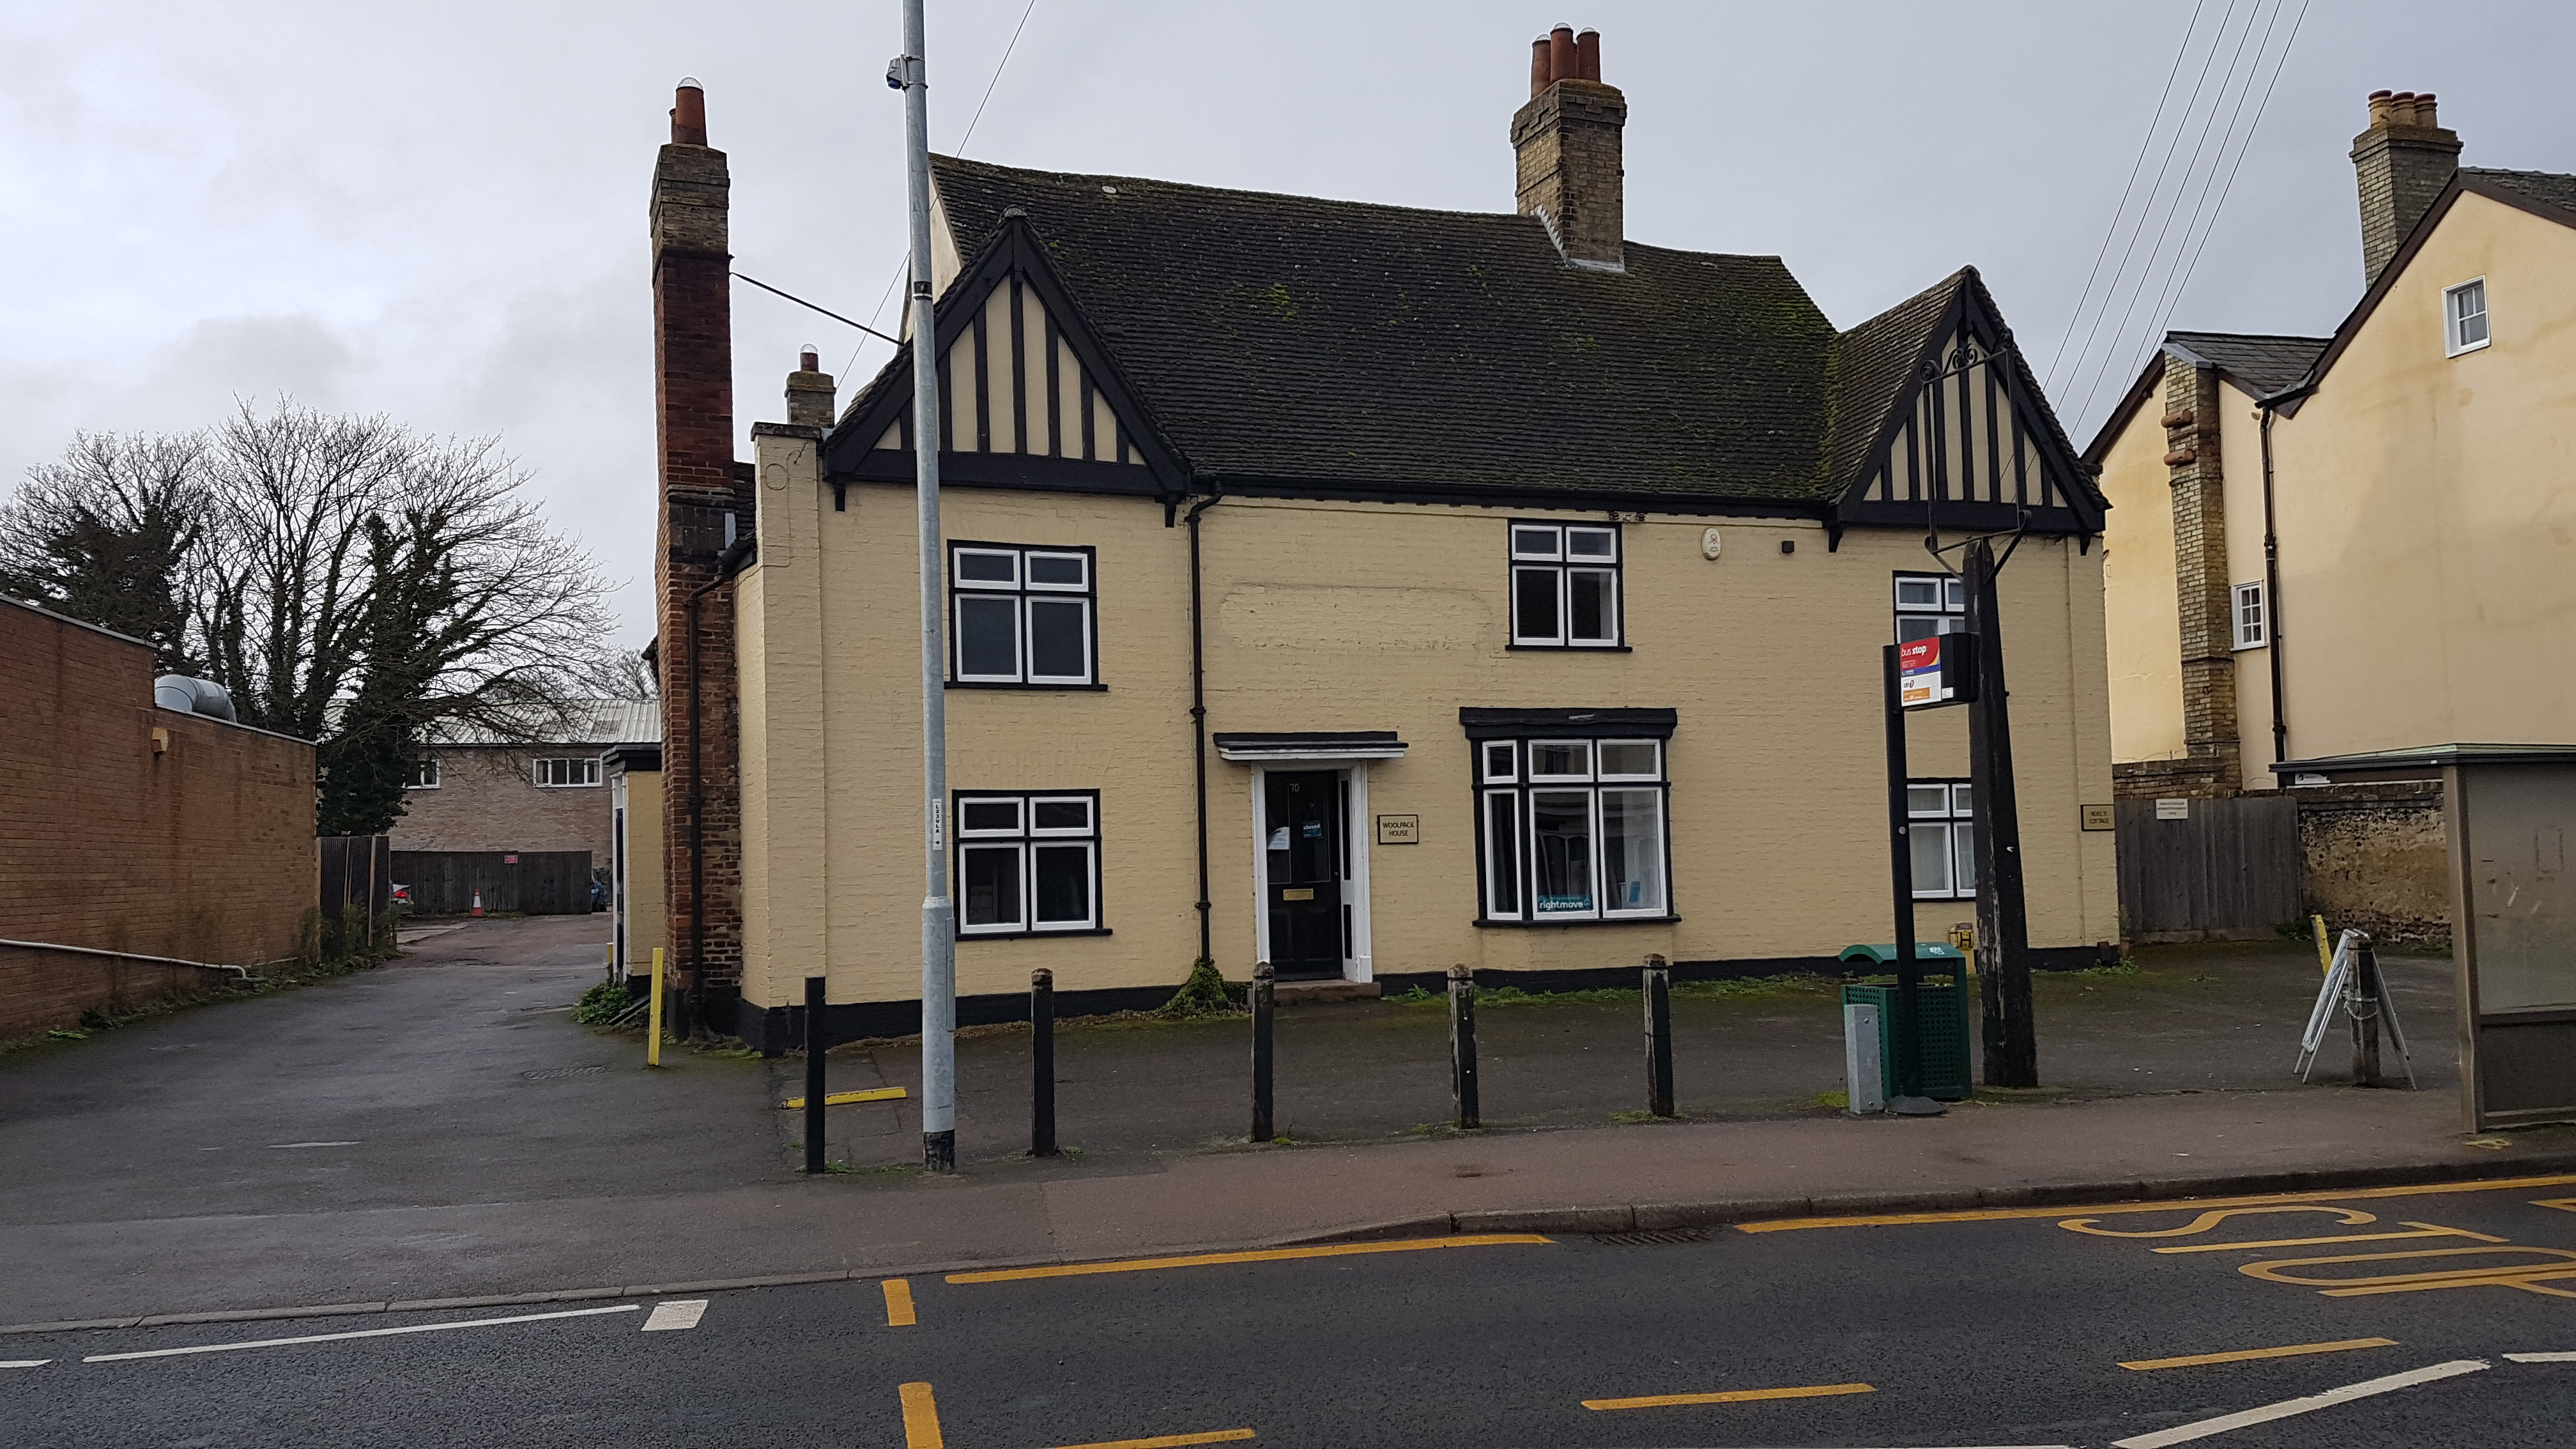 FORMER PERIOD PUB FOR RENT AS OFFICES